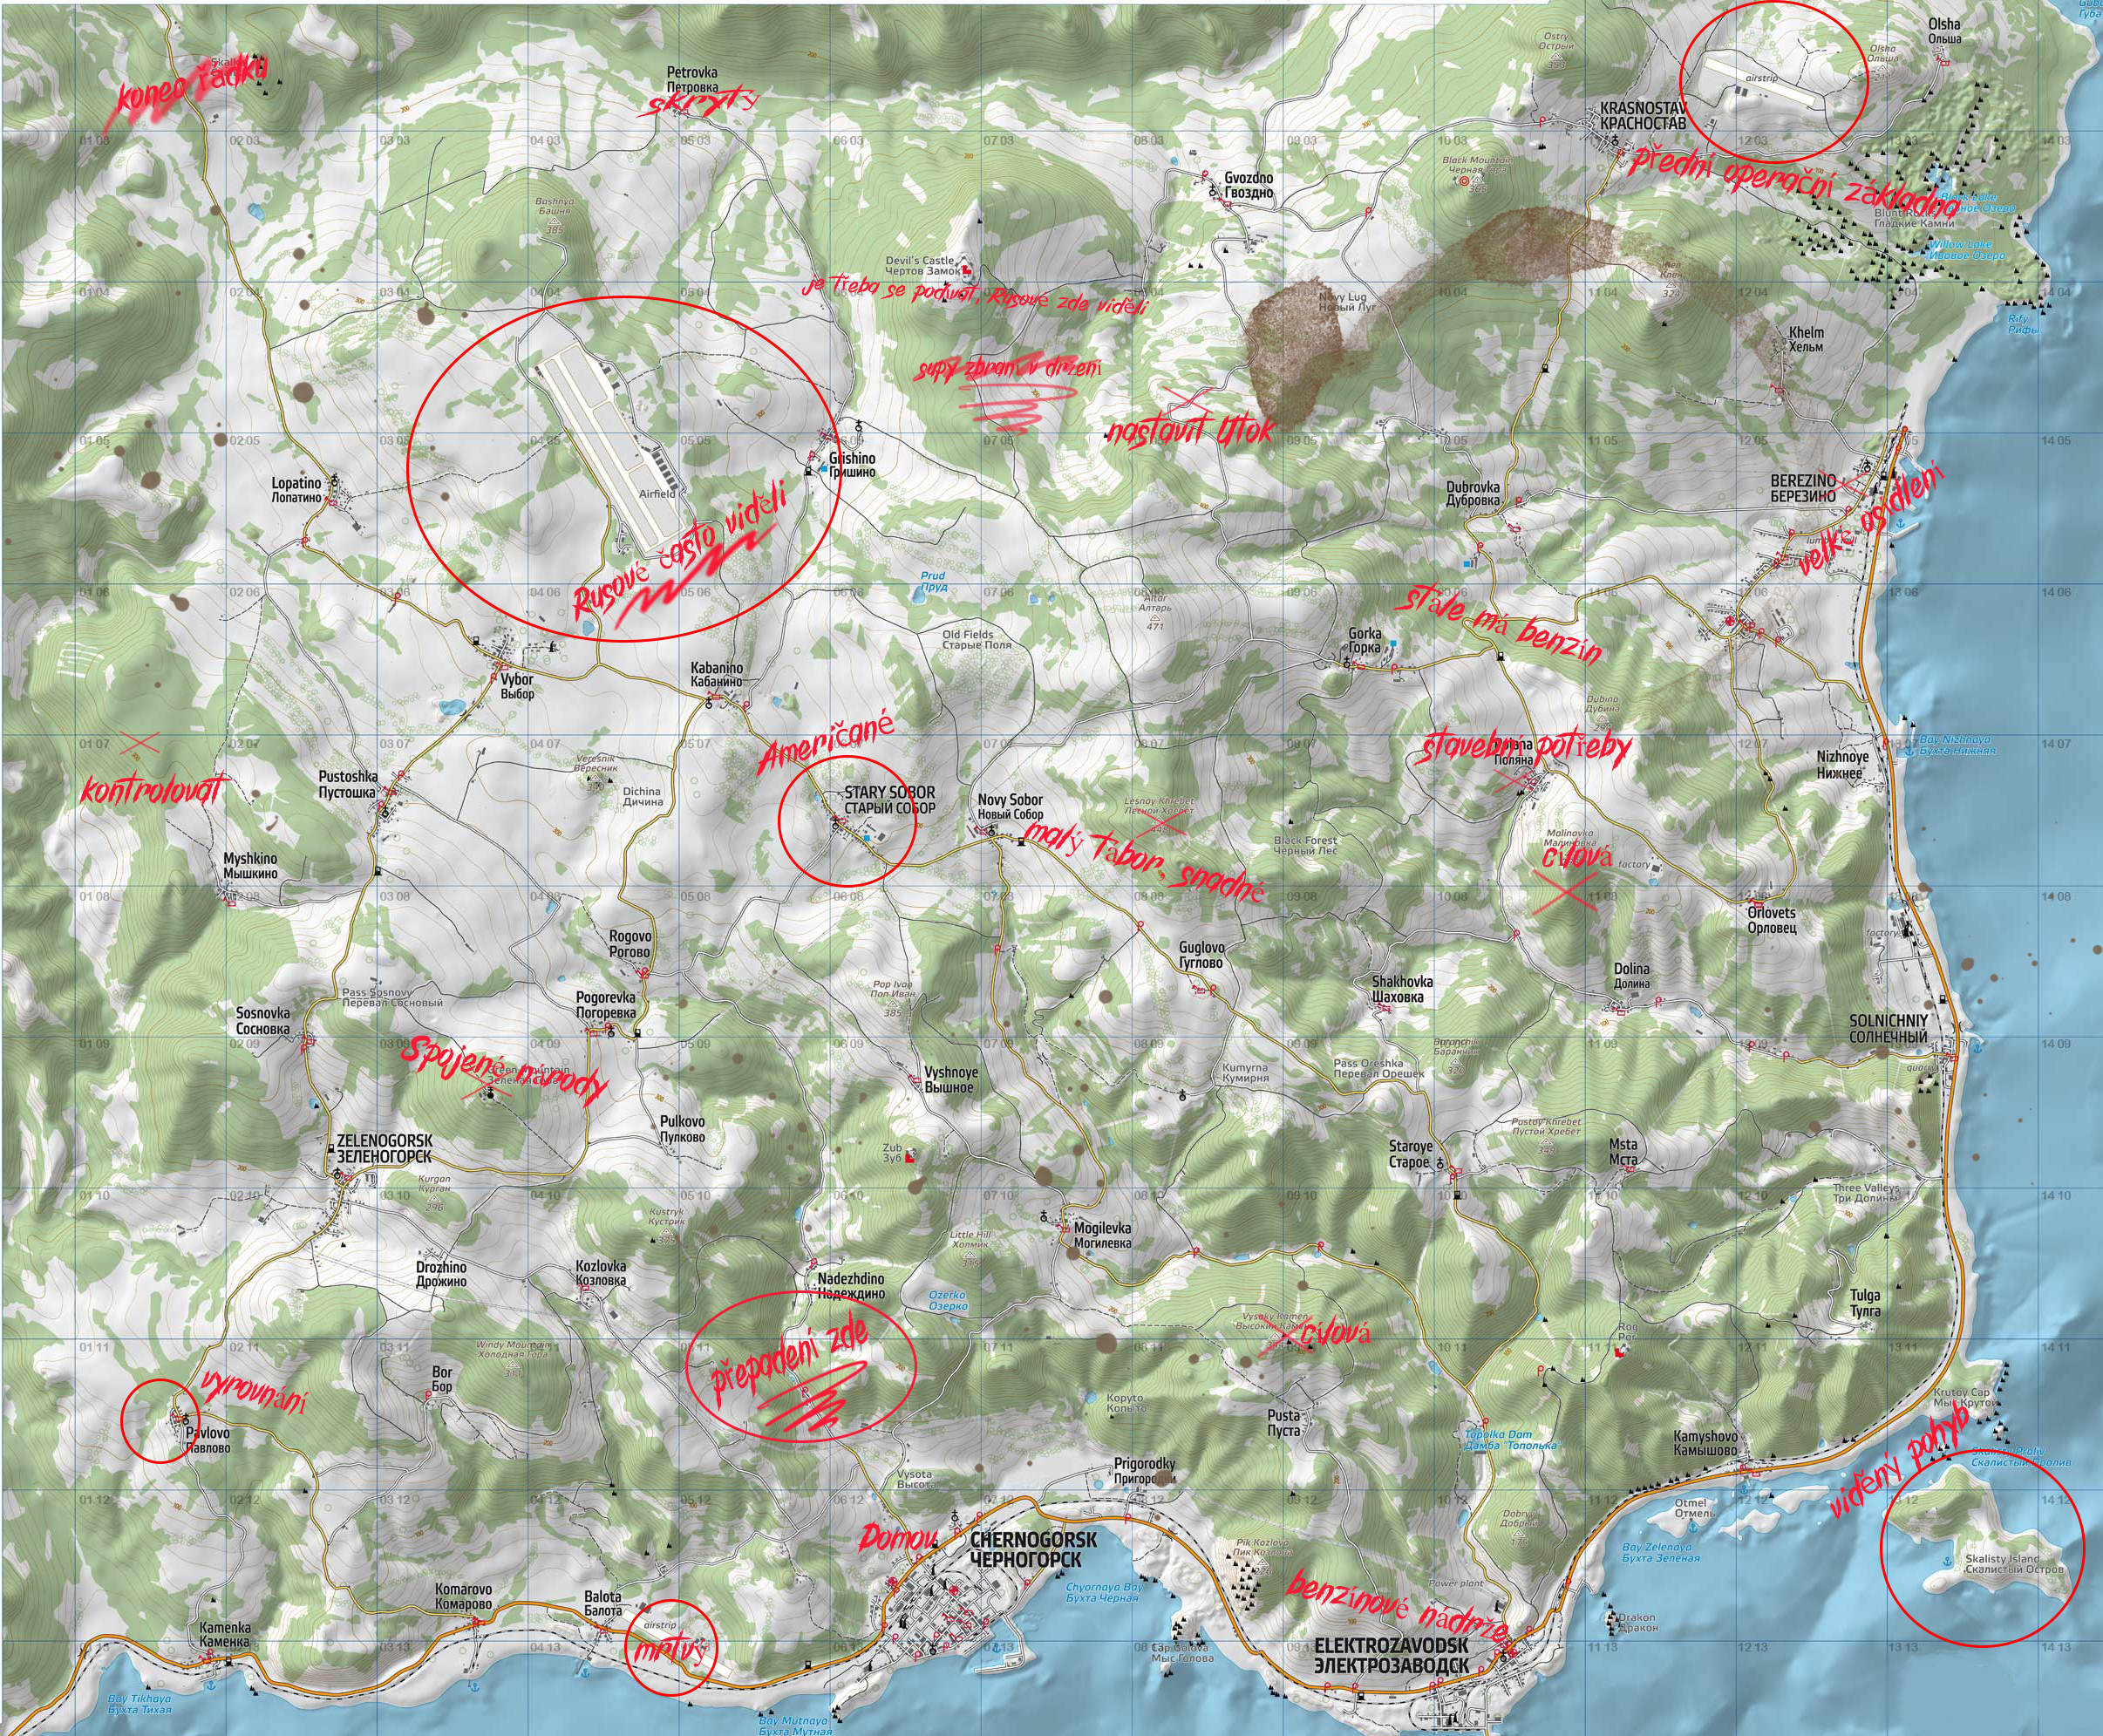 Chernarus-Map_new.png.7181727f45dcc5853b0084aefdb9a259.png